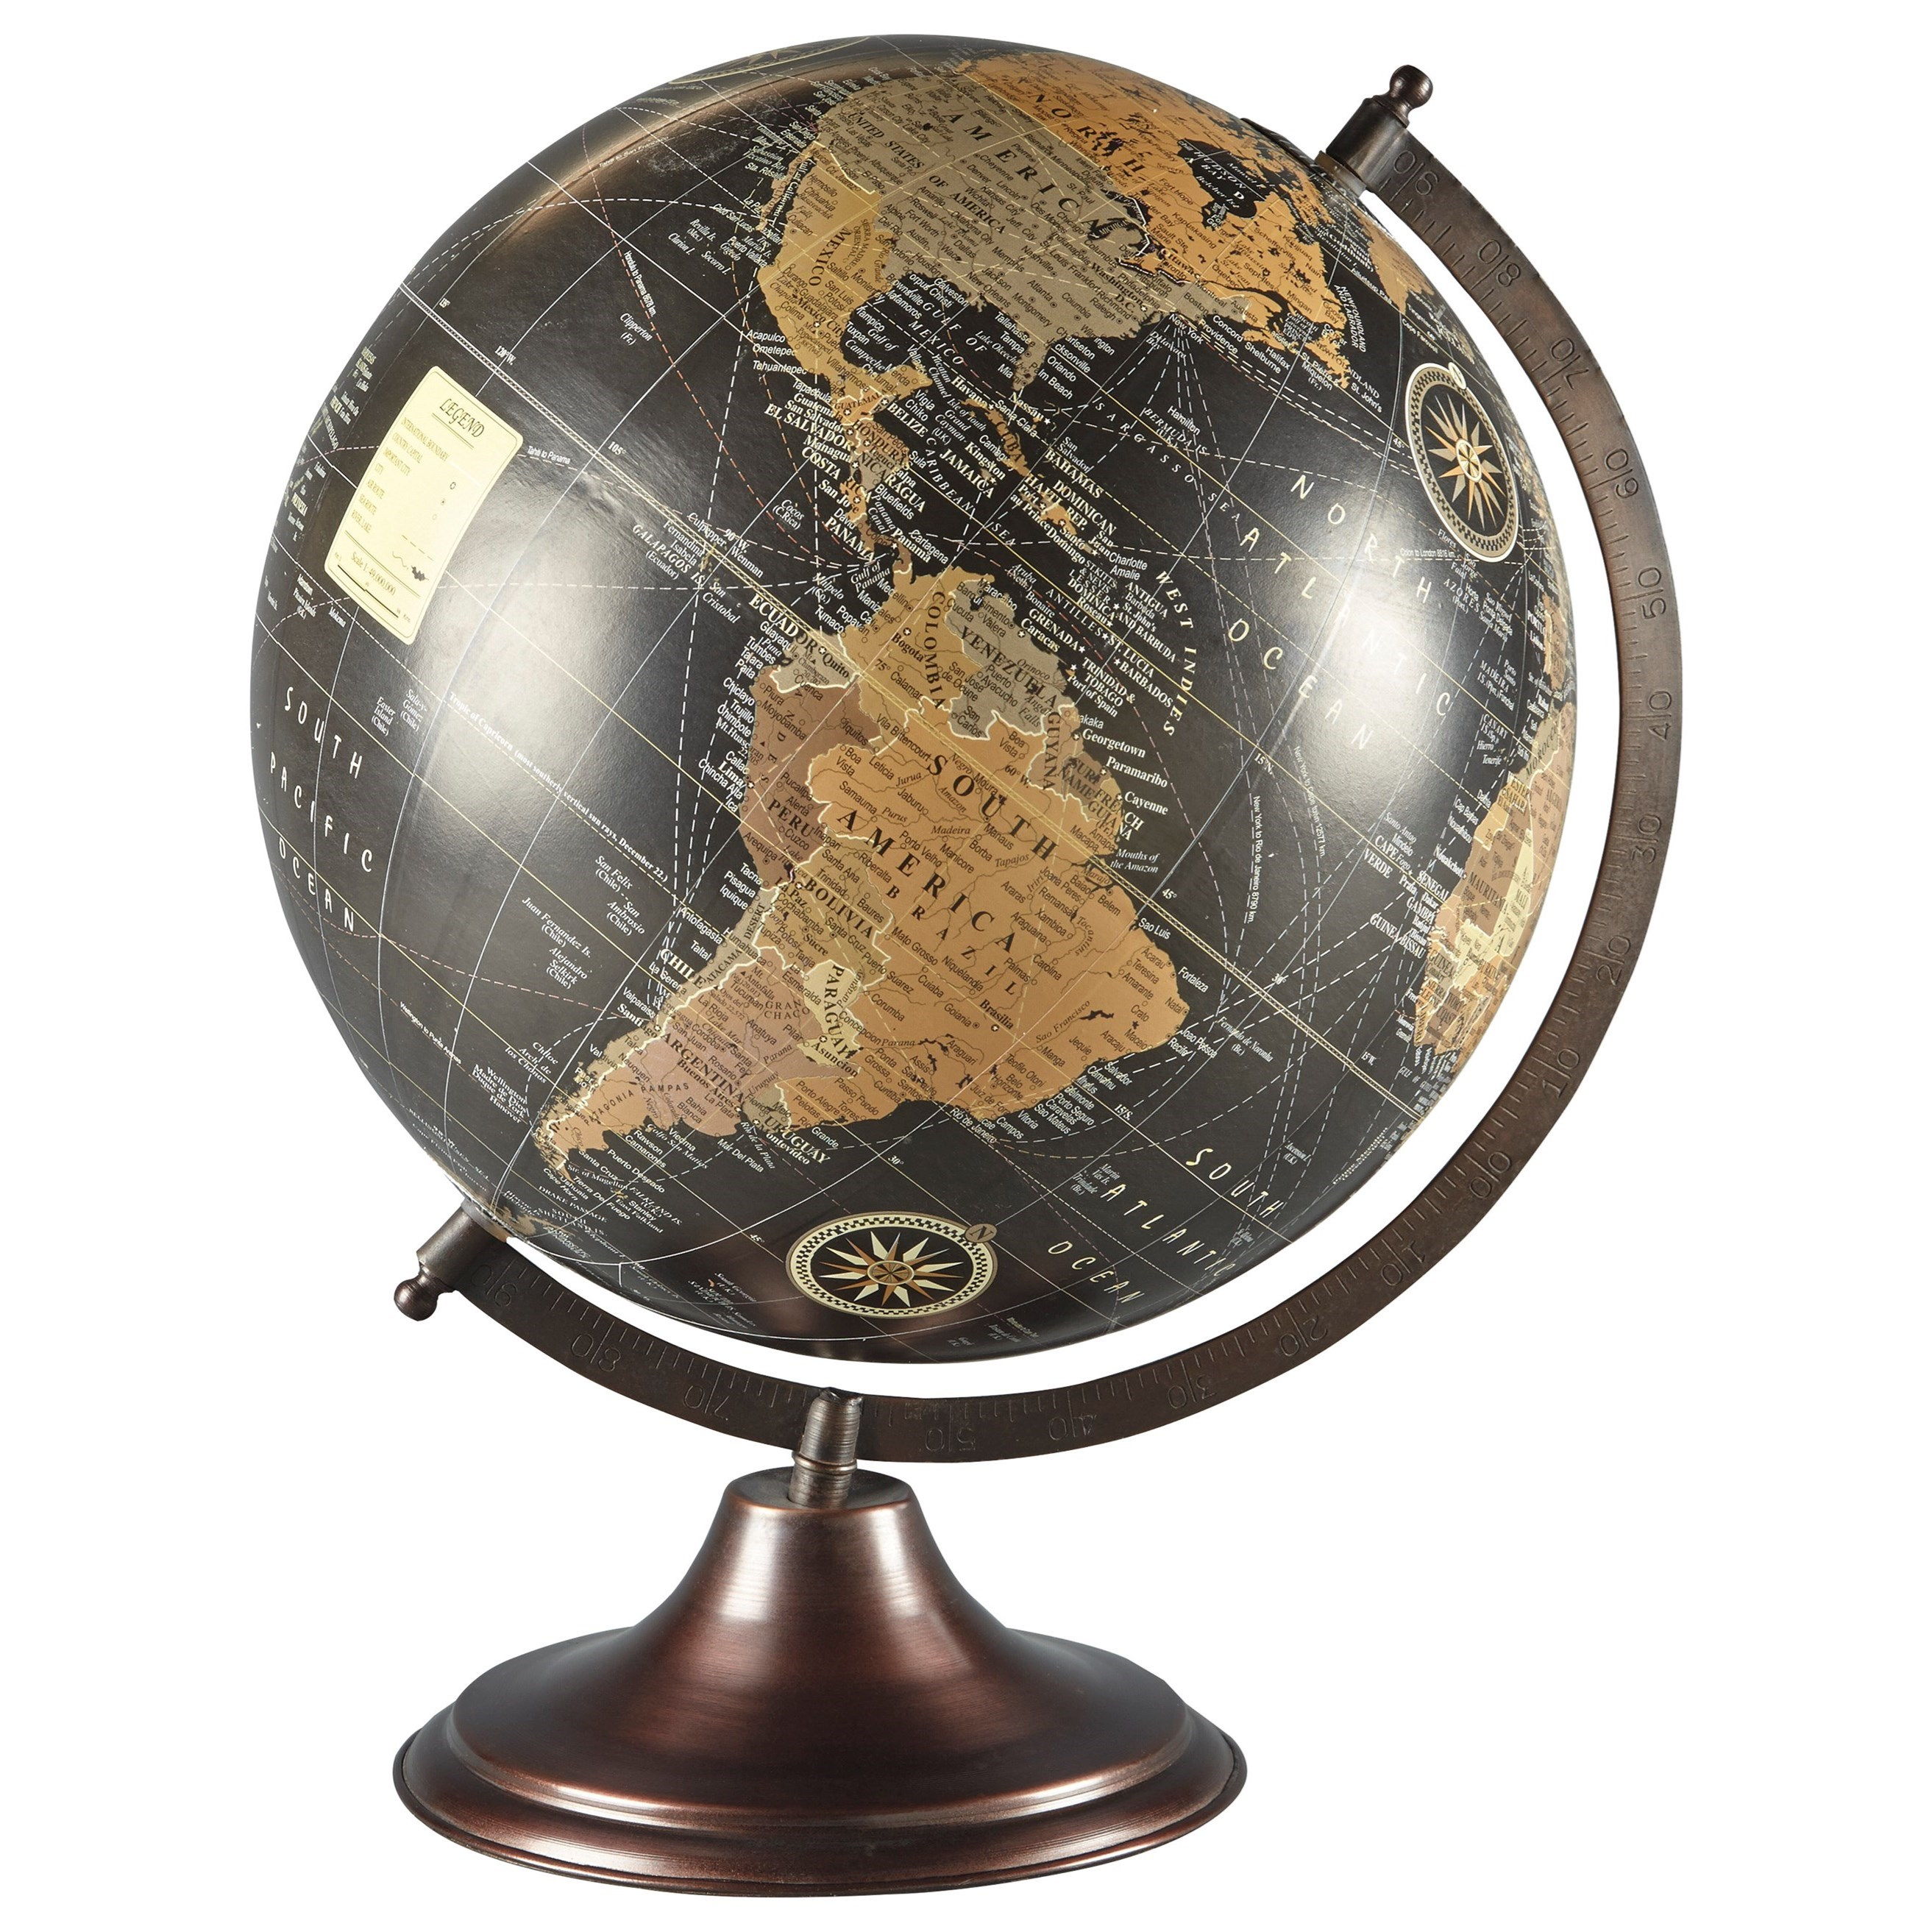 Accents Oakden Multi Globe Sculpture by Ashley Furniture Signature Design at Del Sol Furniture